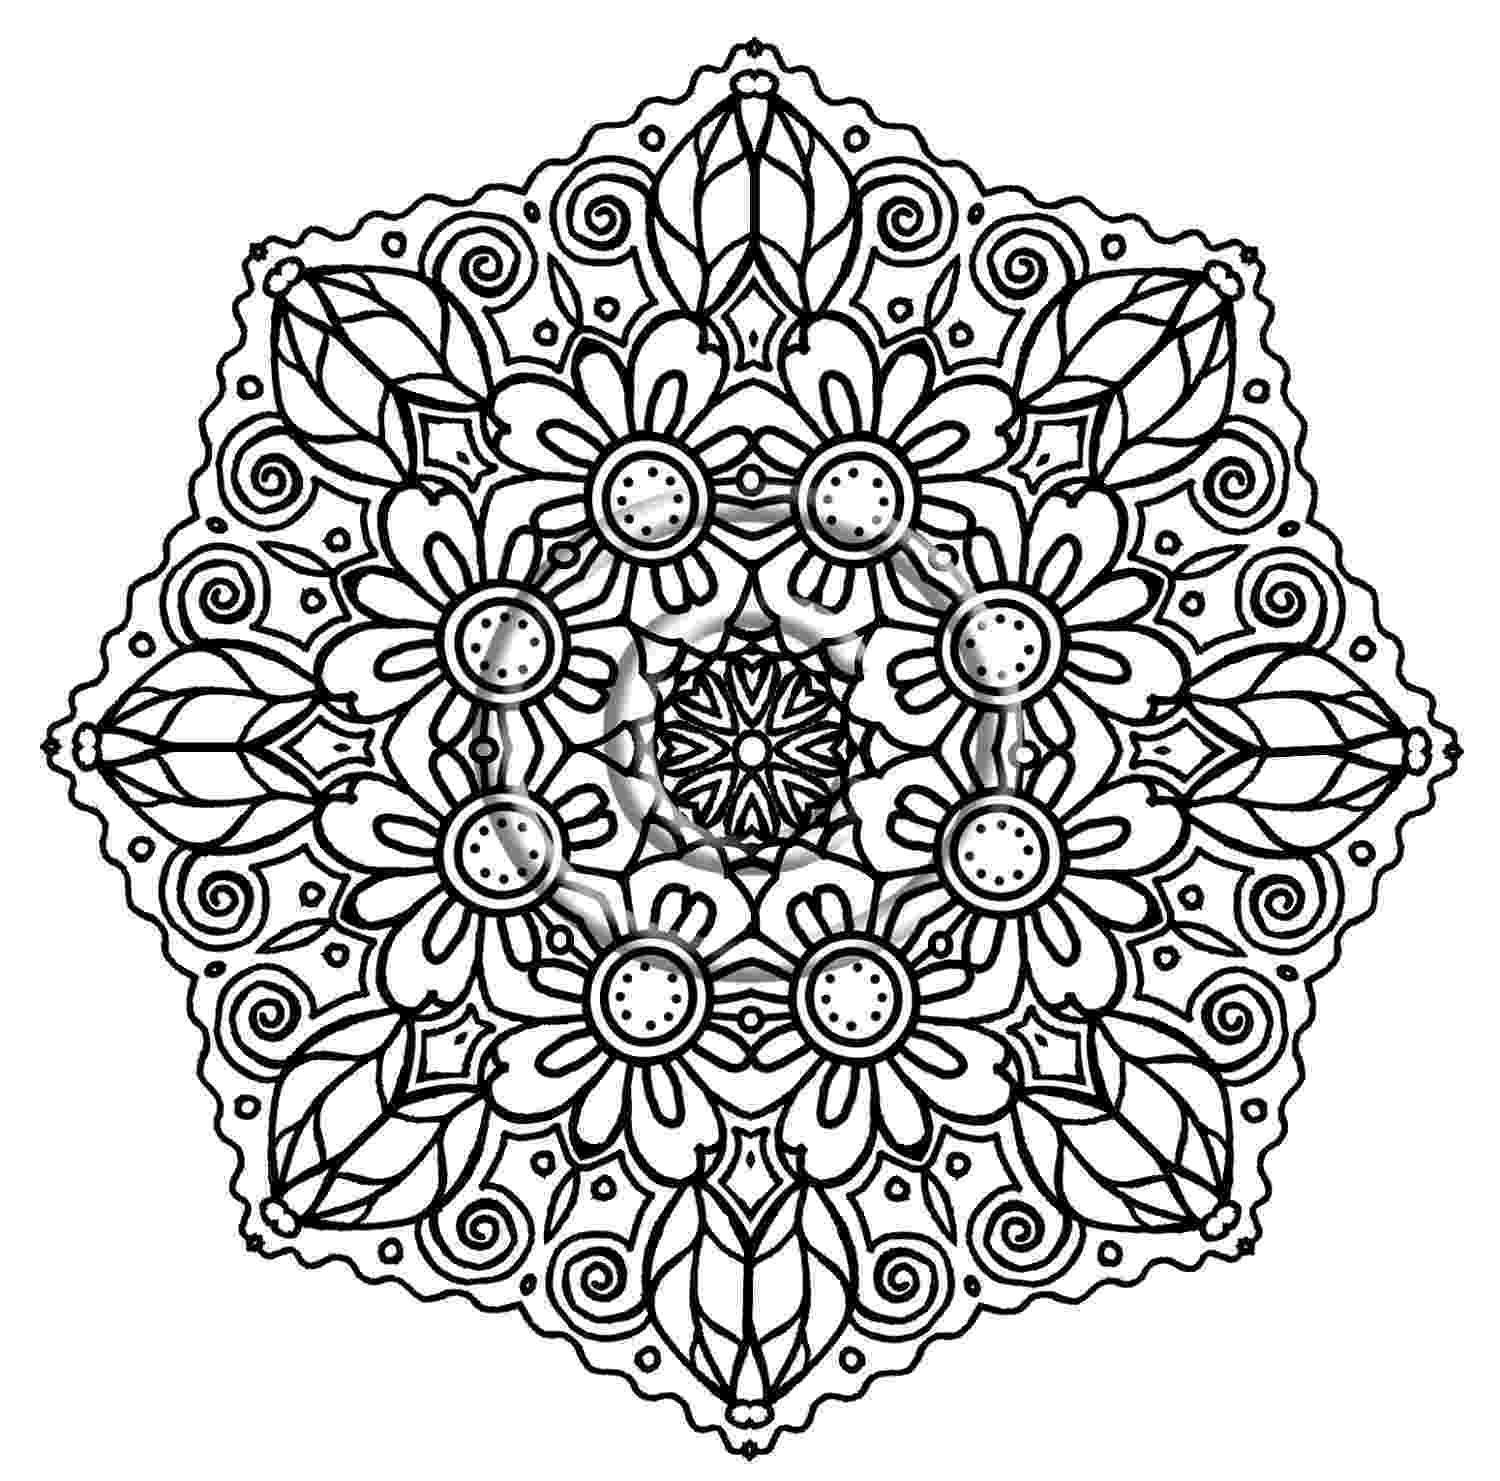 flowers printable coloring pages free printable flower coloring pages for kids best coloring printable flowers pages